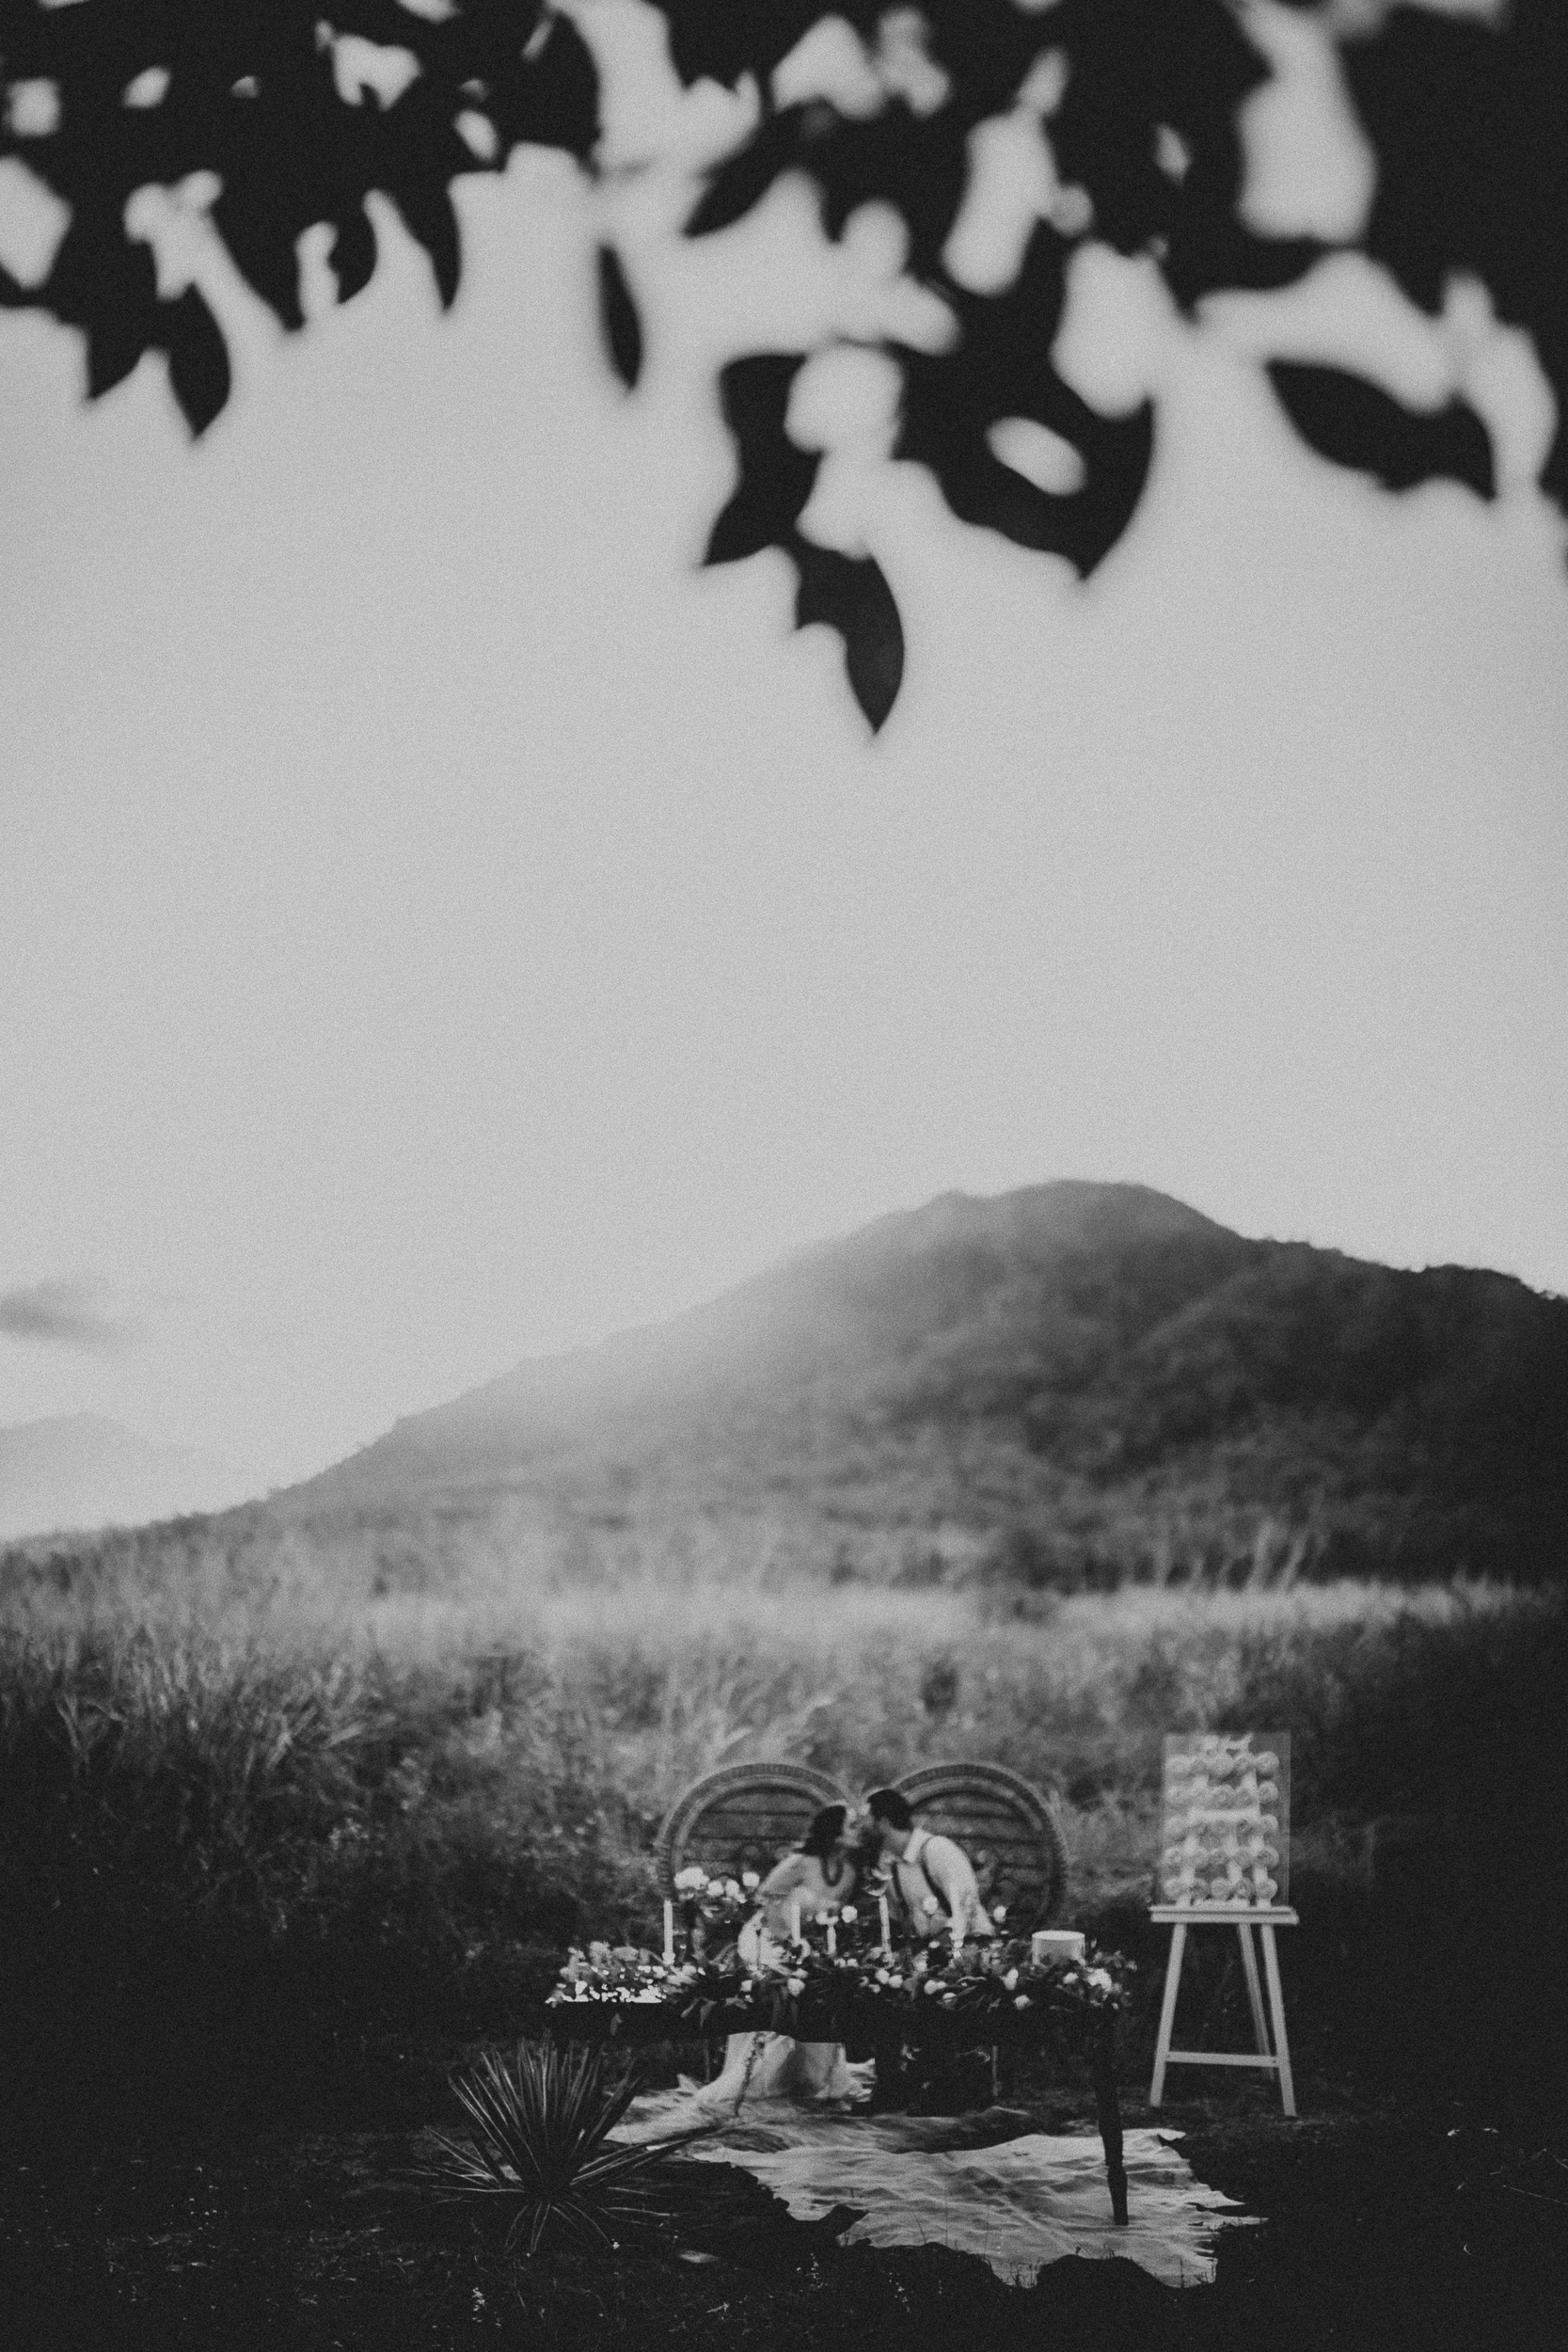 Camilla-French-Photographer-Elopement-Wedding-Intimate-Couples-Families-Maternity-Townsville-Cairns-Queensland-Australia-20.jpg